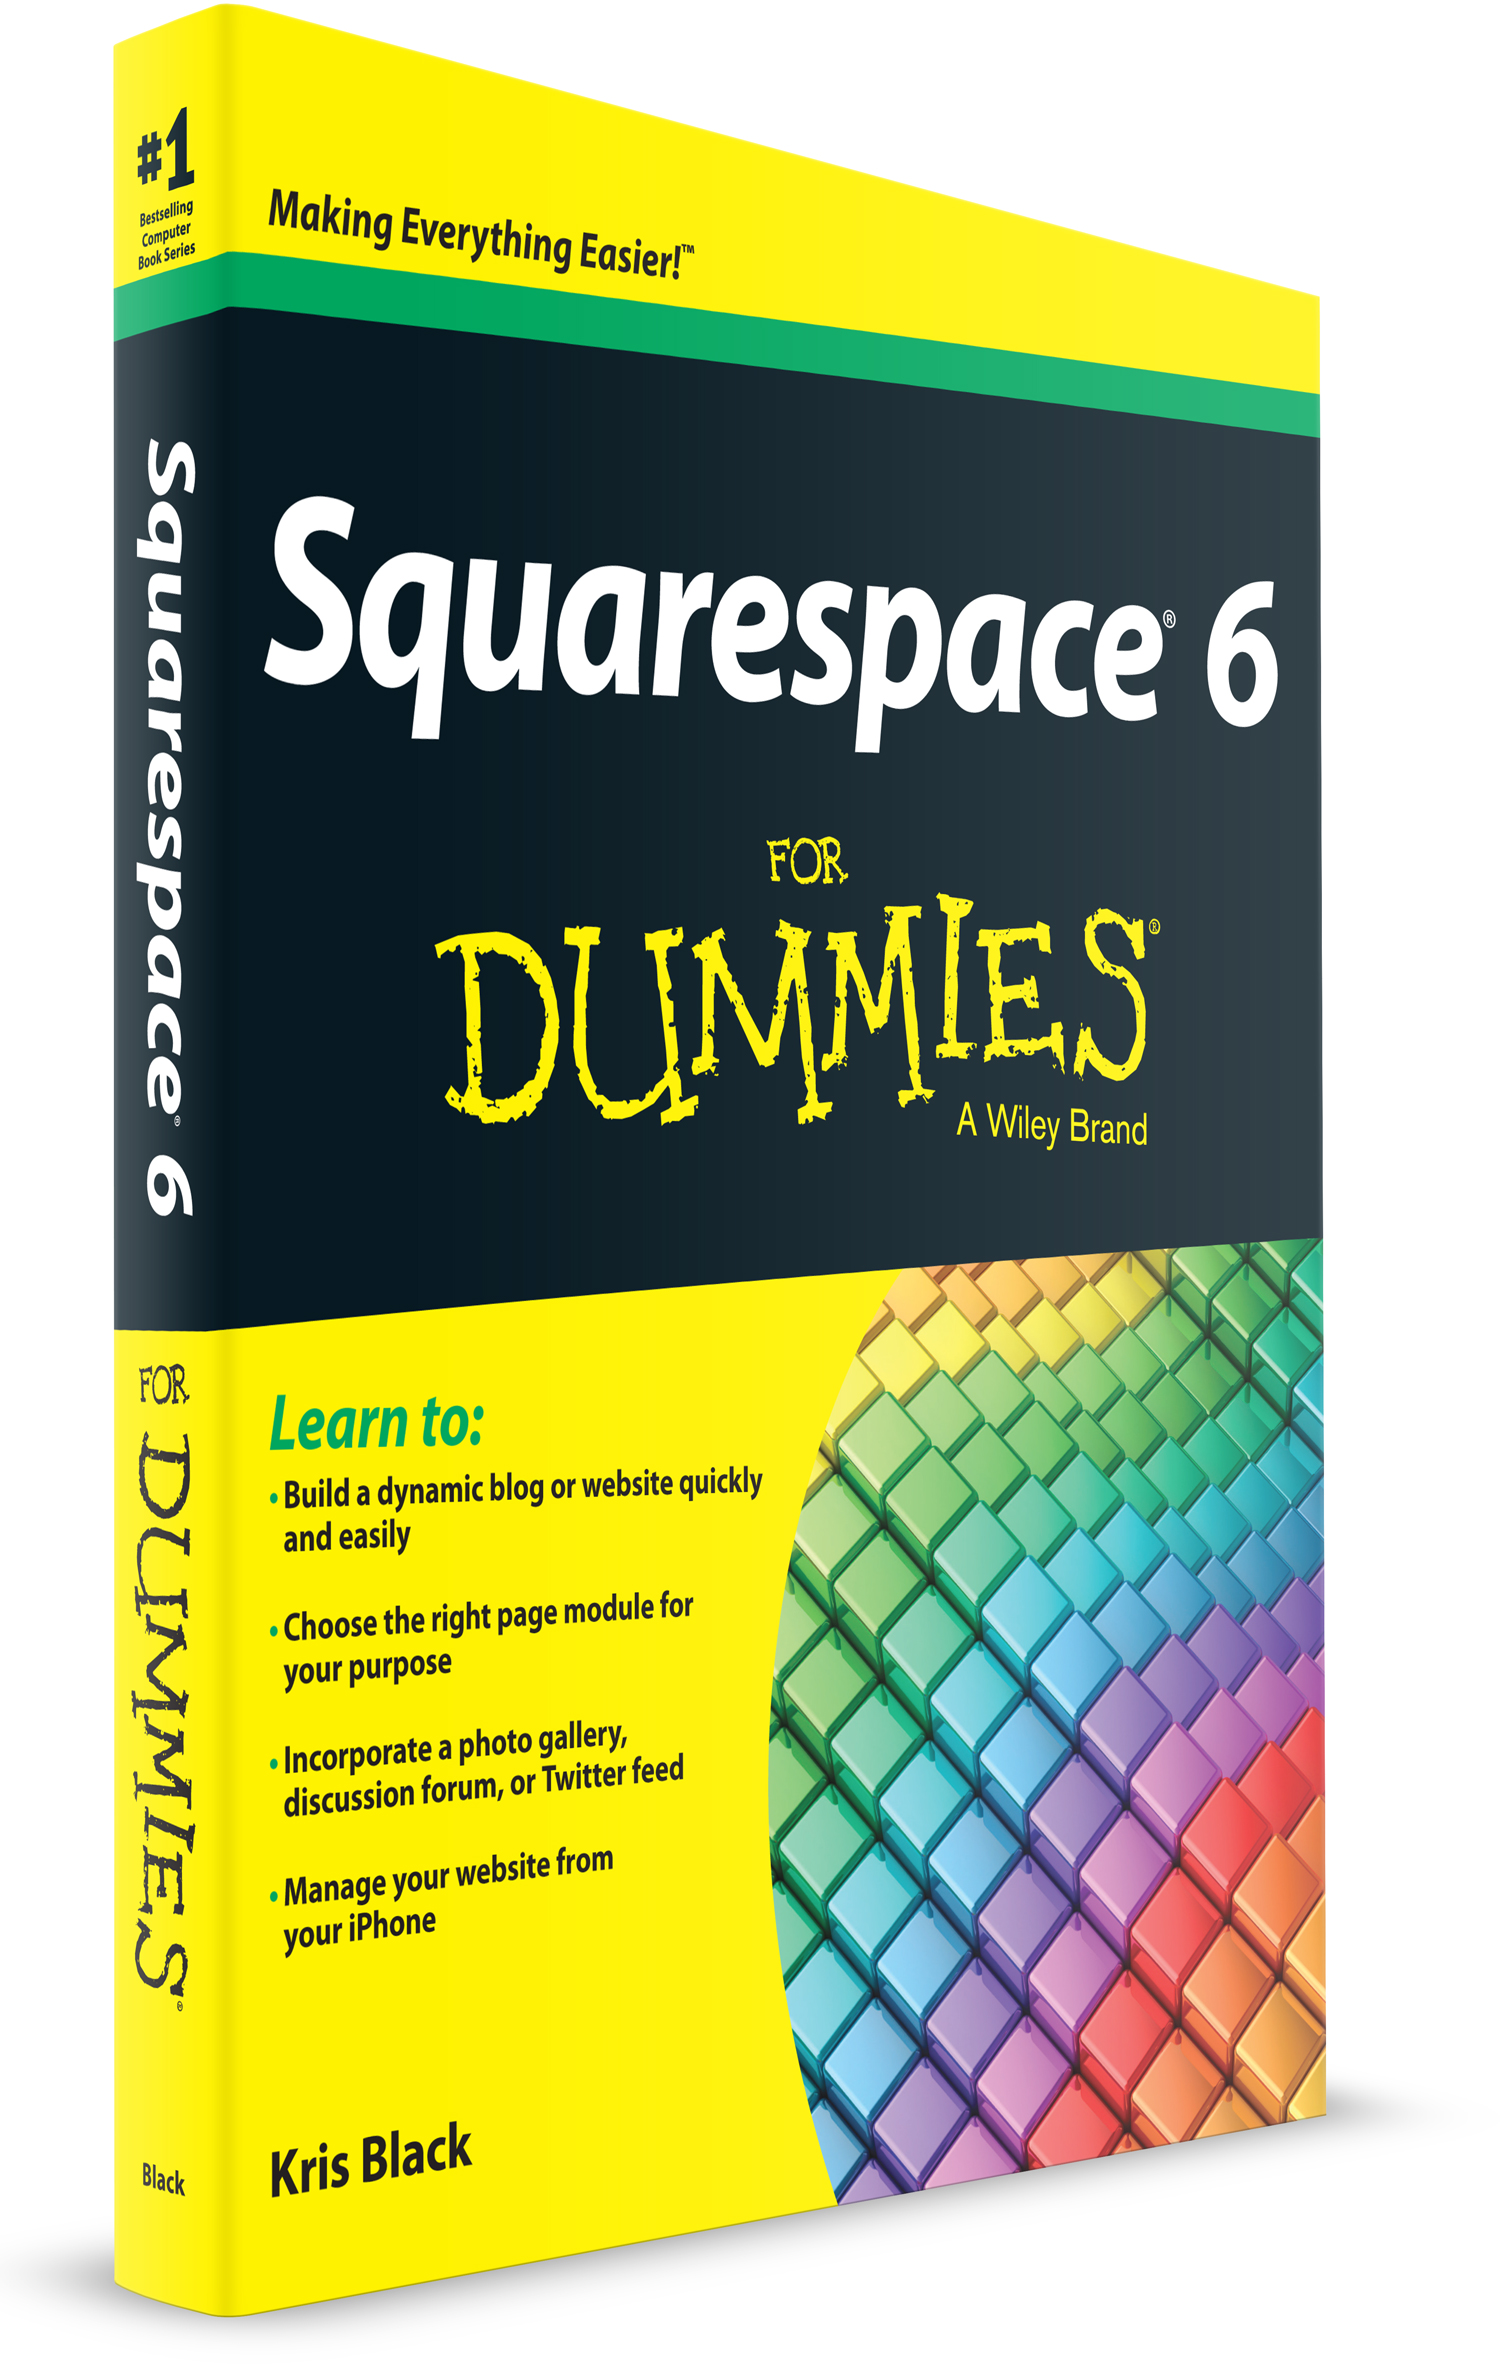 Squarespace 6 ForDummies is available from your favorite bookseller.